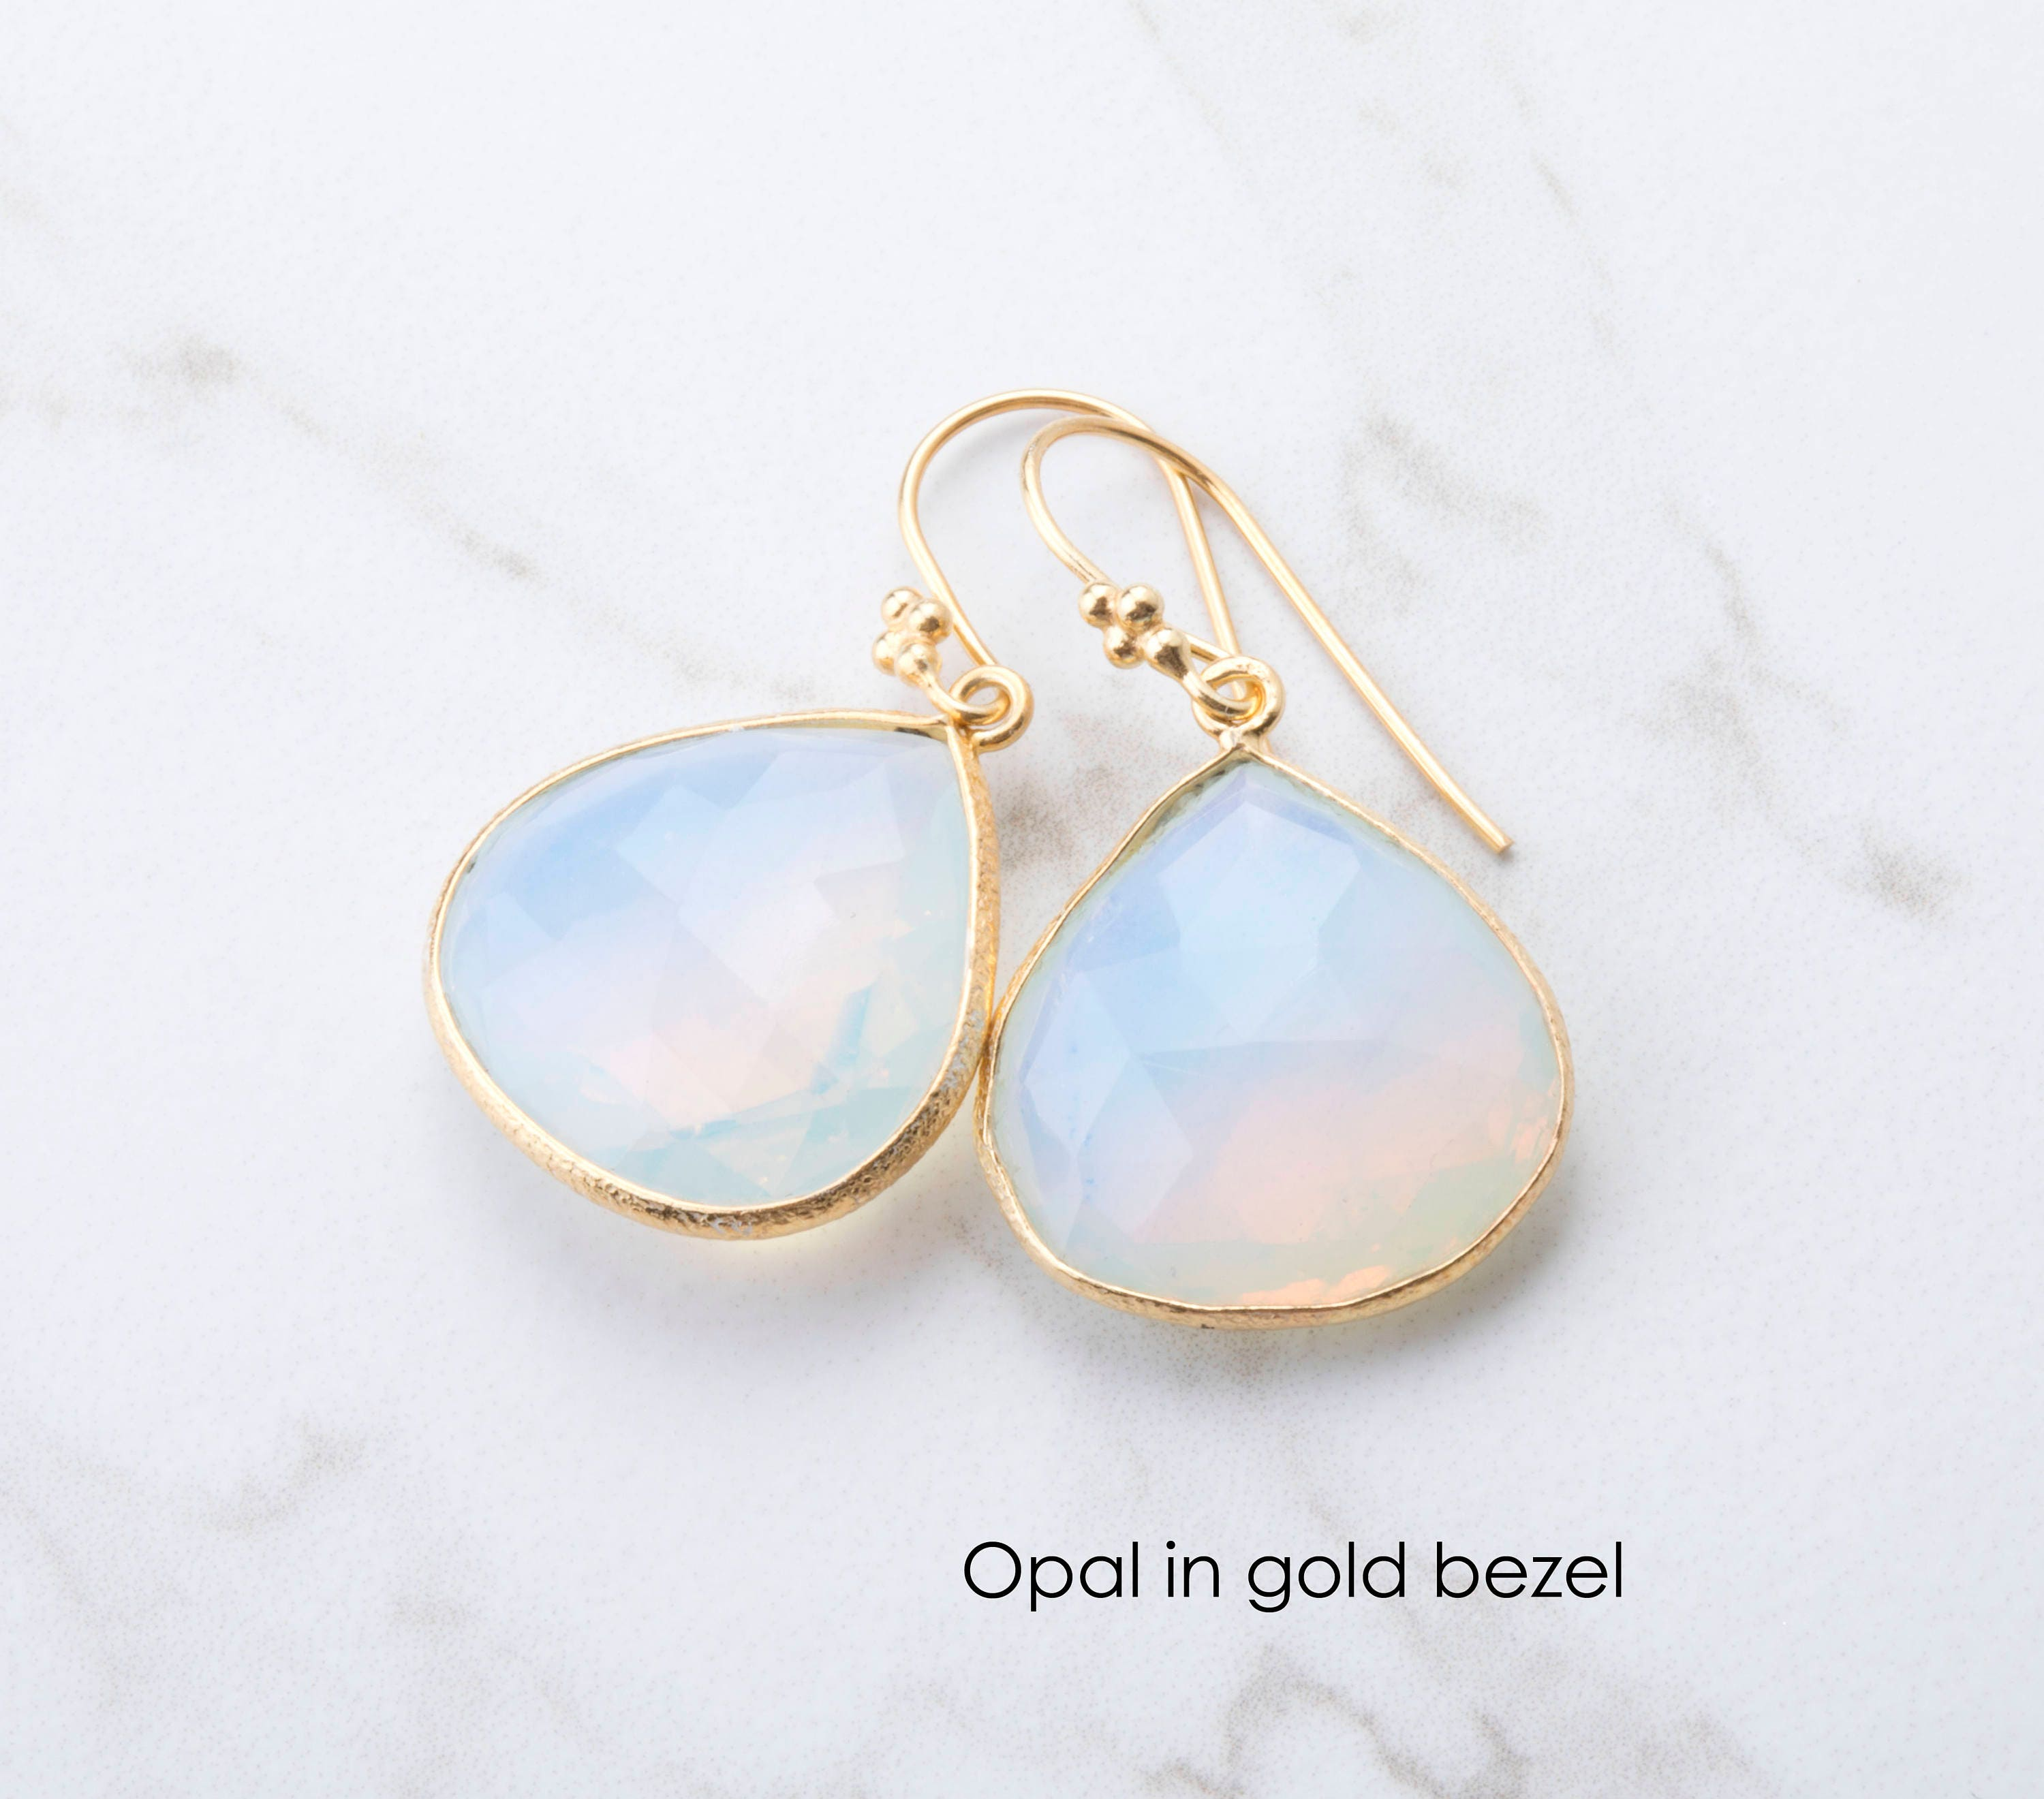 scale age subsampling product terra and assymetric of upscale false zoom jewellery crop discovery gold the opal earrings ikuria diamond editor blue shop